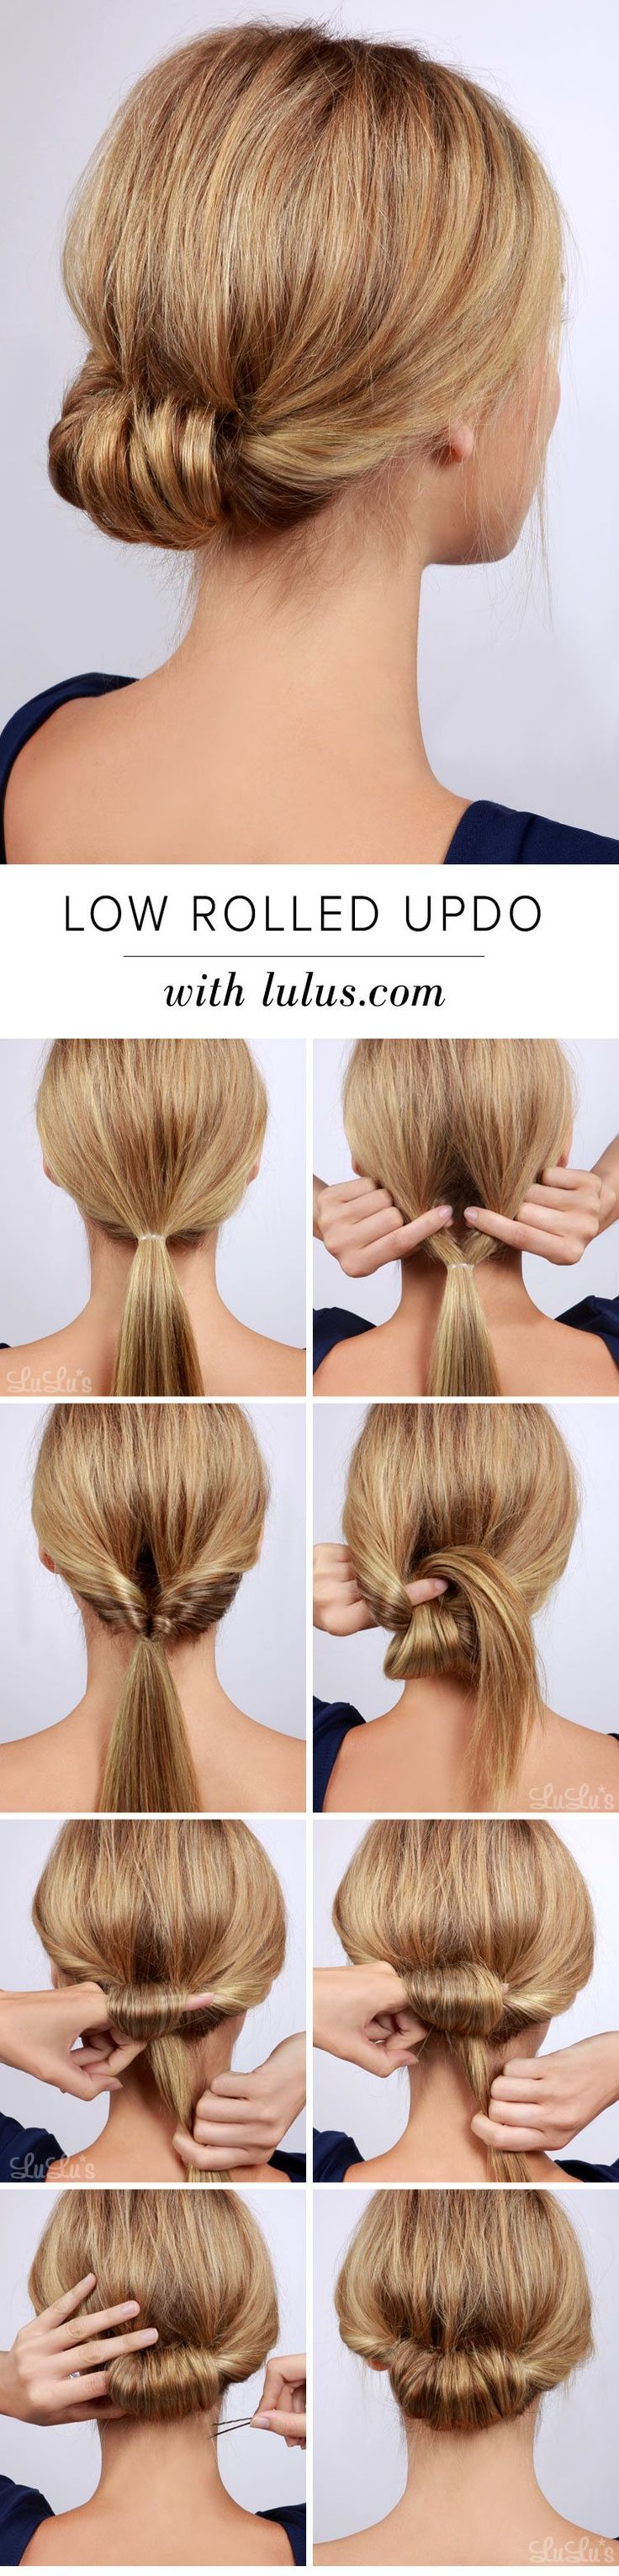 Cute easy updo